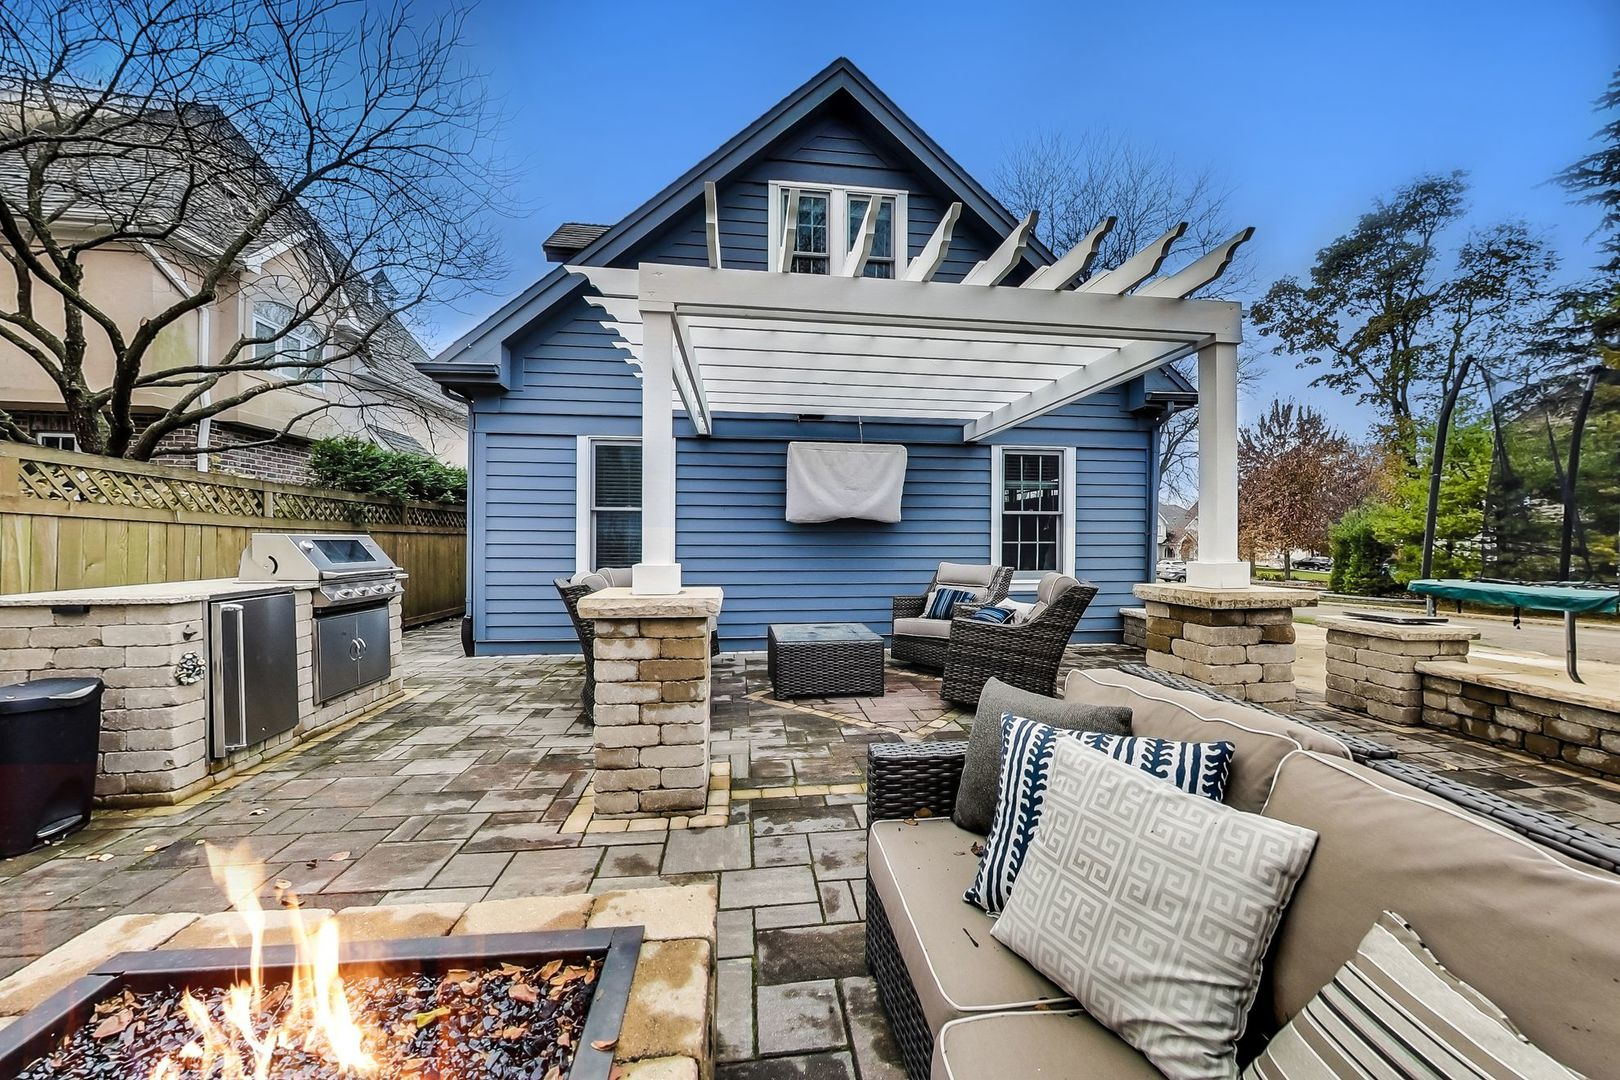 544 West 7th, Hinsdale, Illinois, 60521